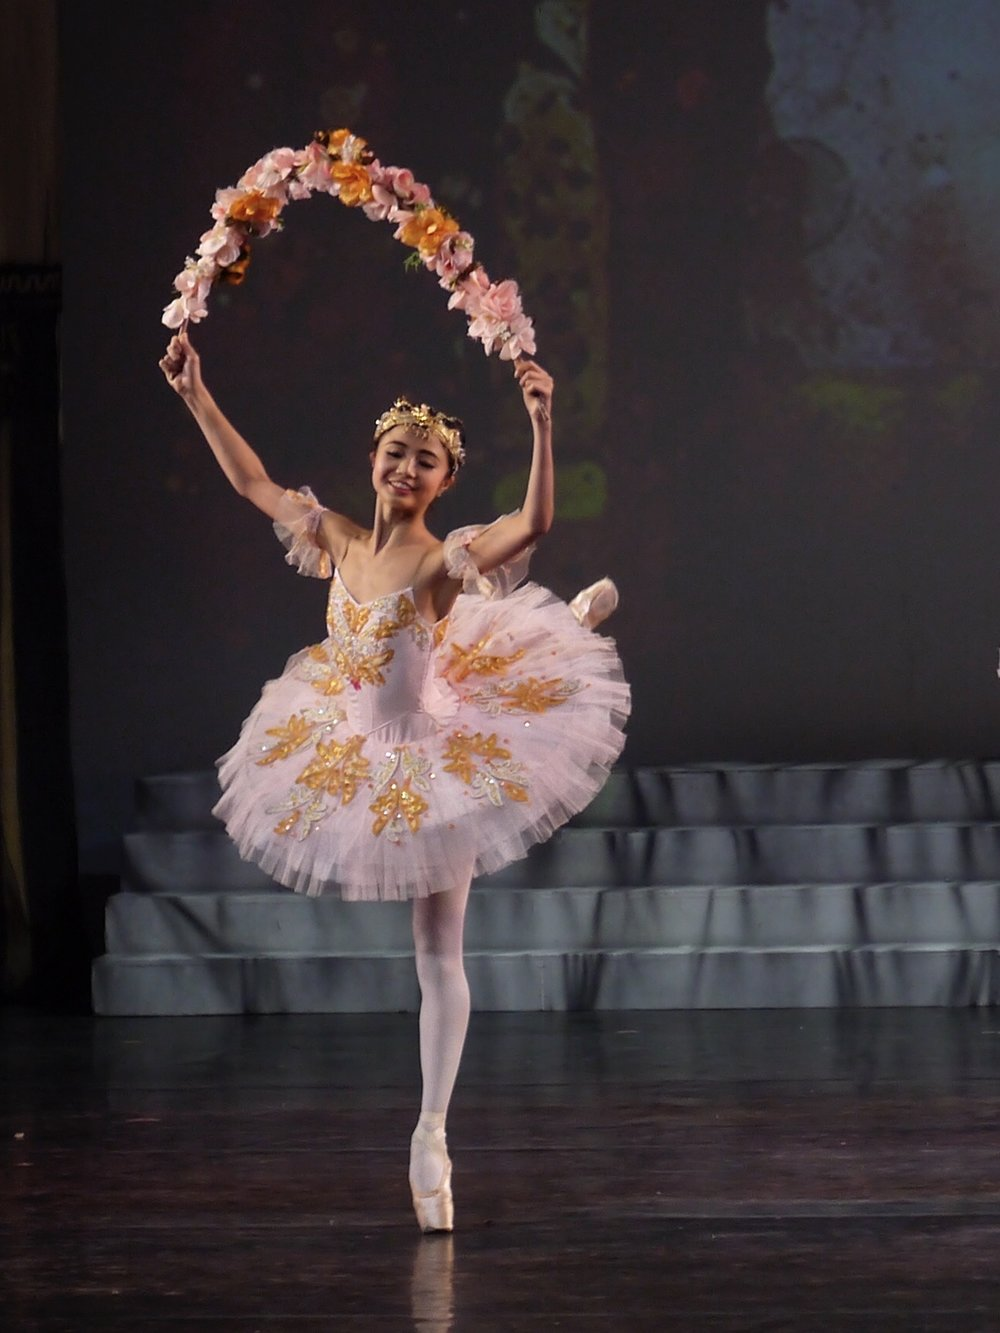 Everything's coming up roses for Sayaka who moved to the Philippines from Japan to pursue a career in ballet. Photo by Giselle P. Kasilag